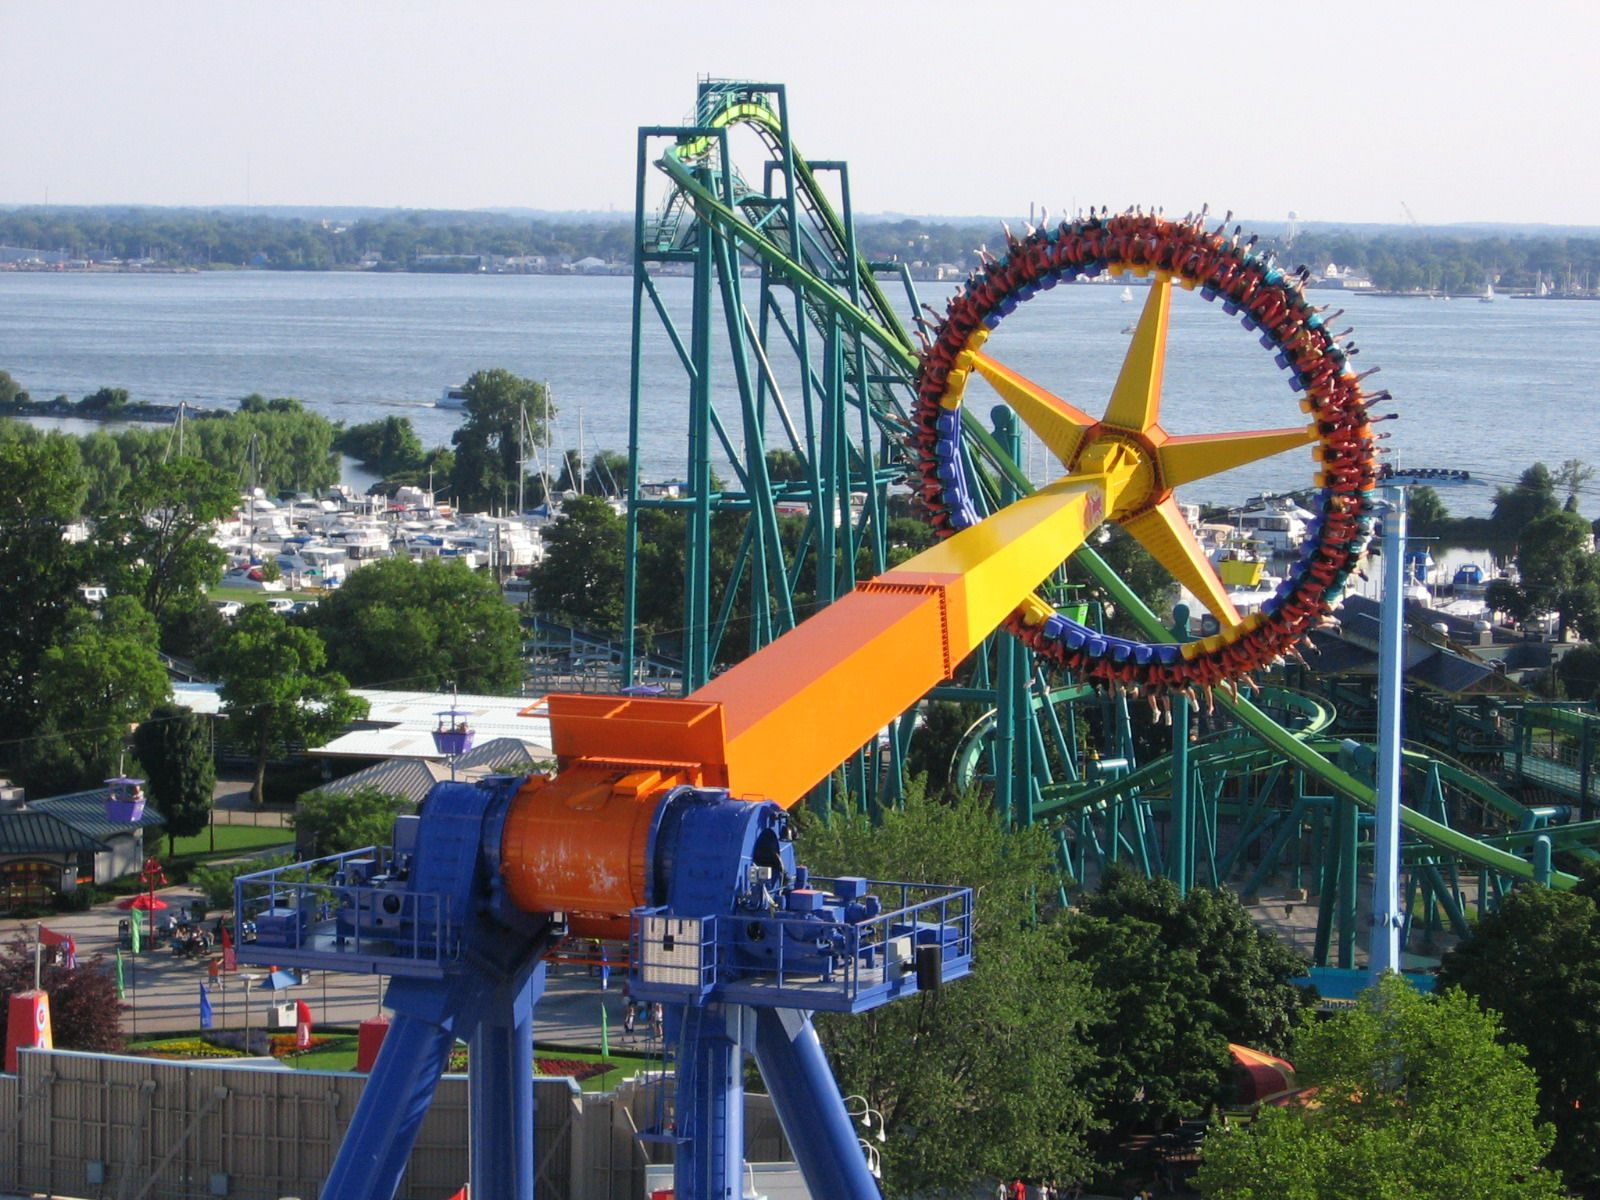 This is my favorite ride anywhere, ever. CEDAR POINT